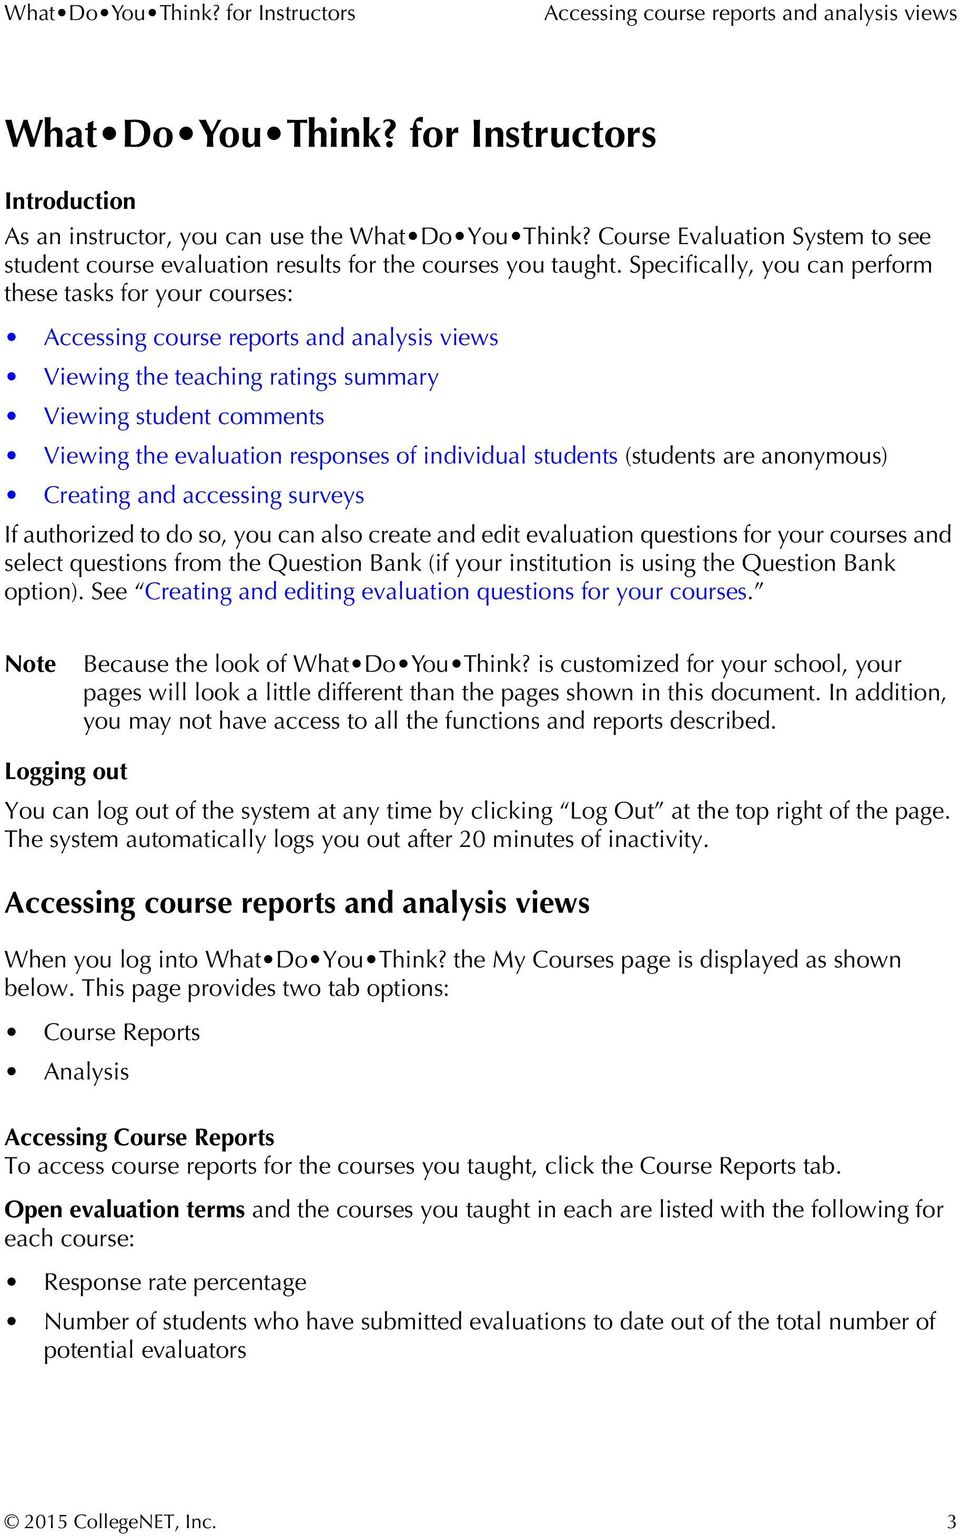 Specifically, you can perform these tasks for your courses: Accessing course reports and analysis views Viewing the teaching ratings summary Viewing student comments Viewing the evaluation responses